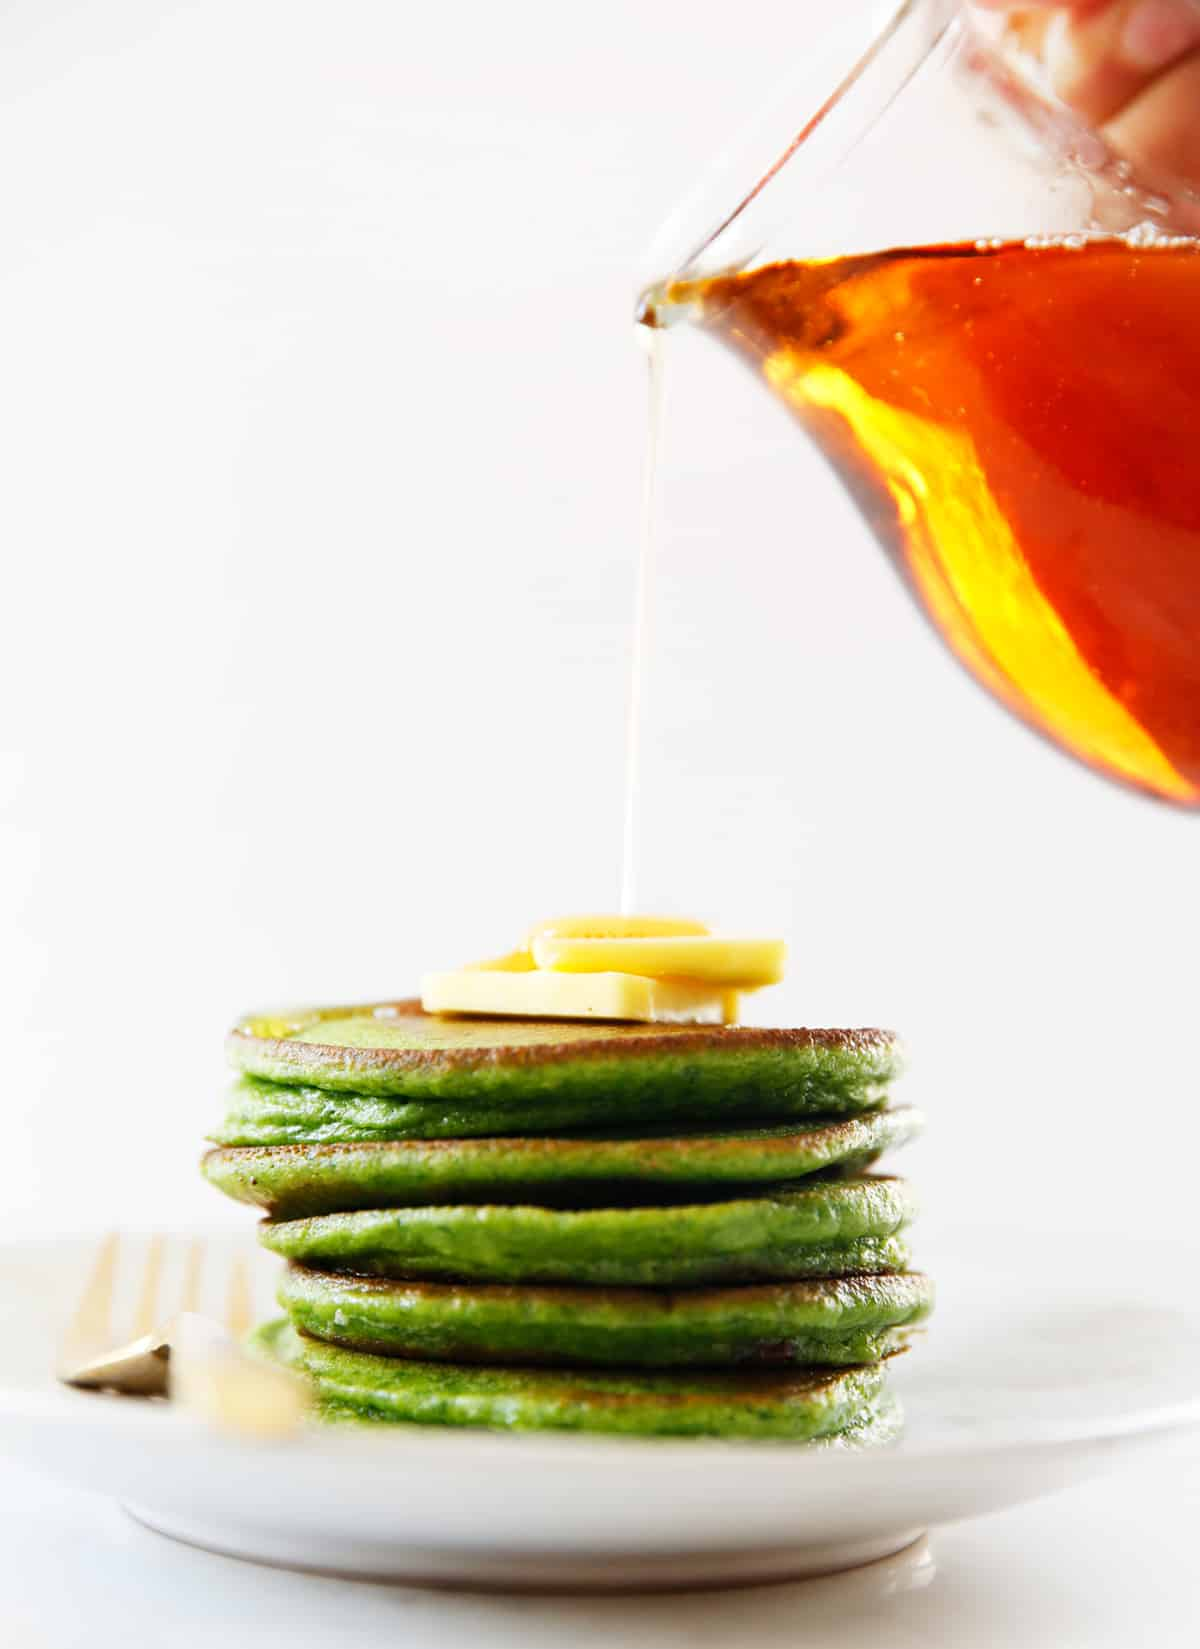 A stack of spinach pancakes with maple syrup being drizzled over the top.